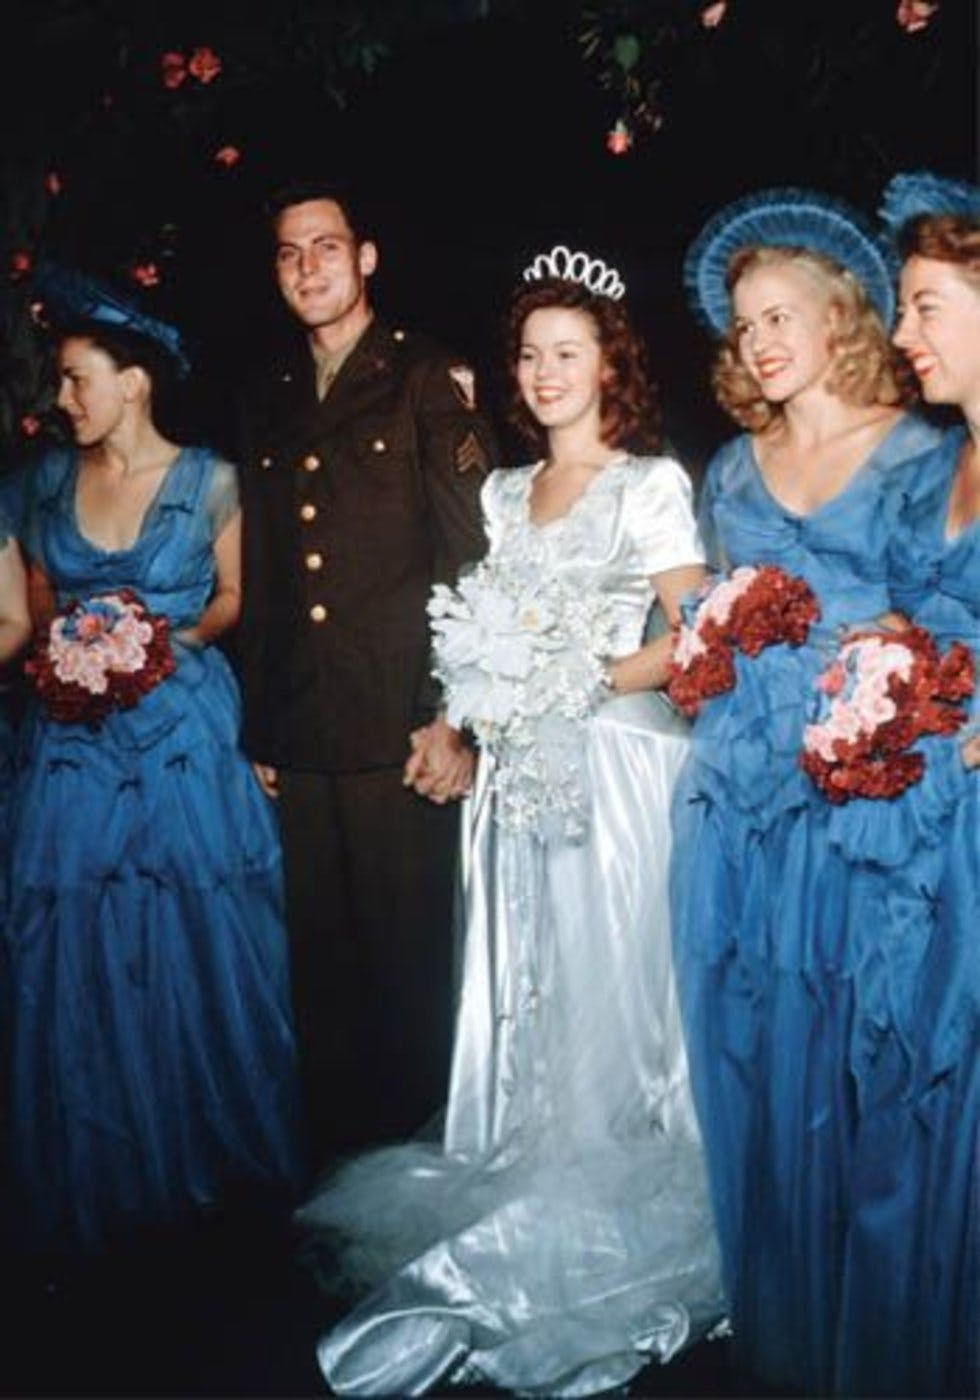 Pictures: Iconic Celebrity Wedding Dresses | Stylist